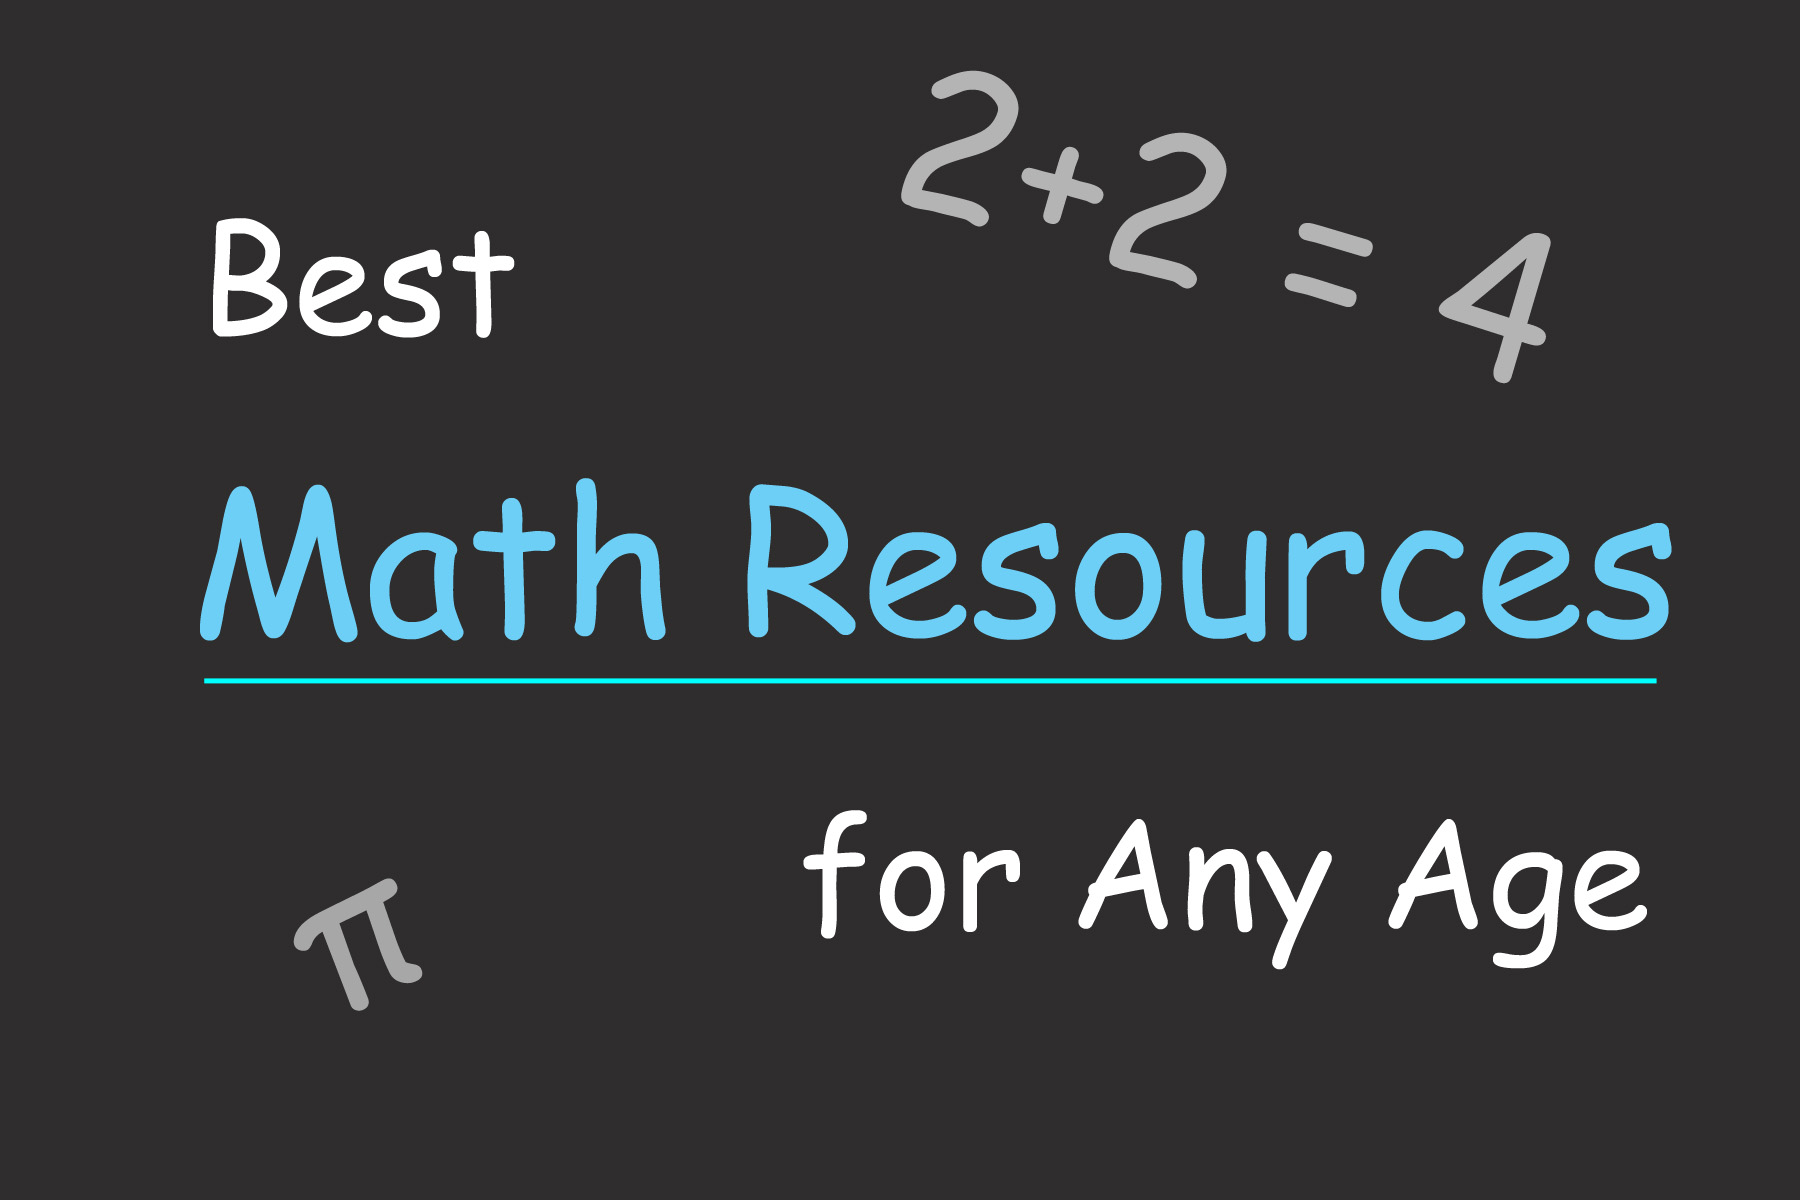 Best Math Resources for Any Age